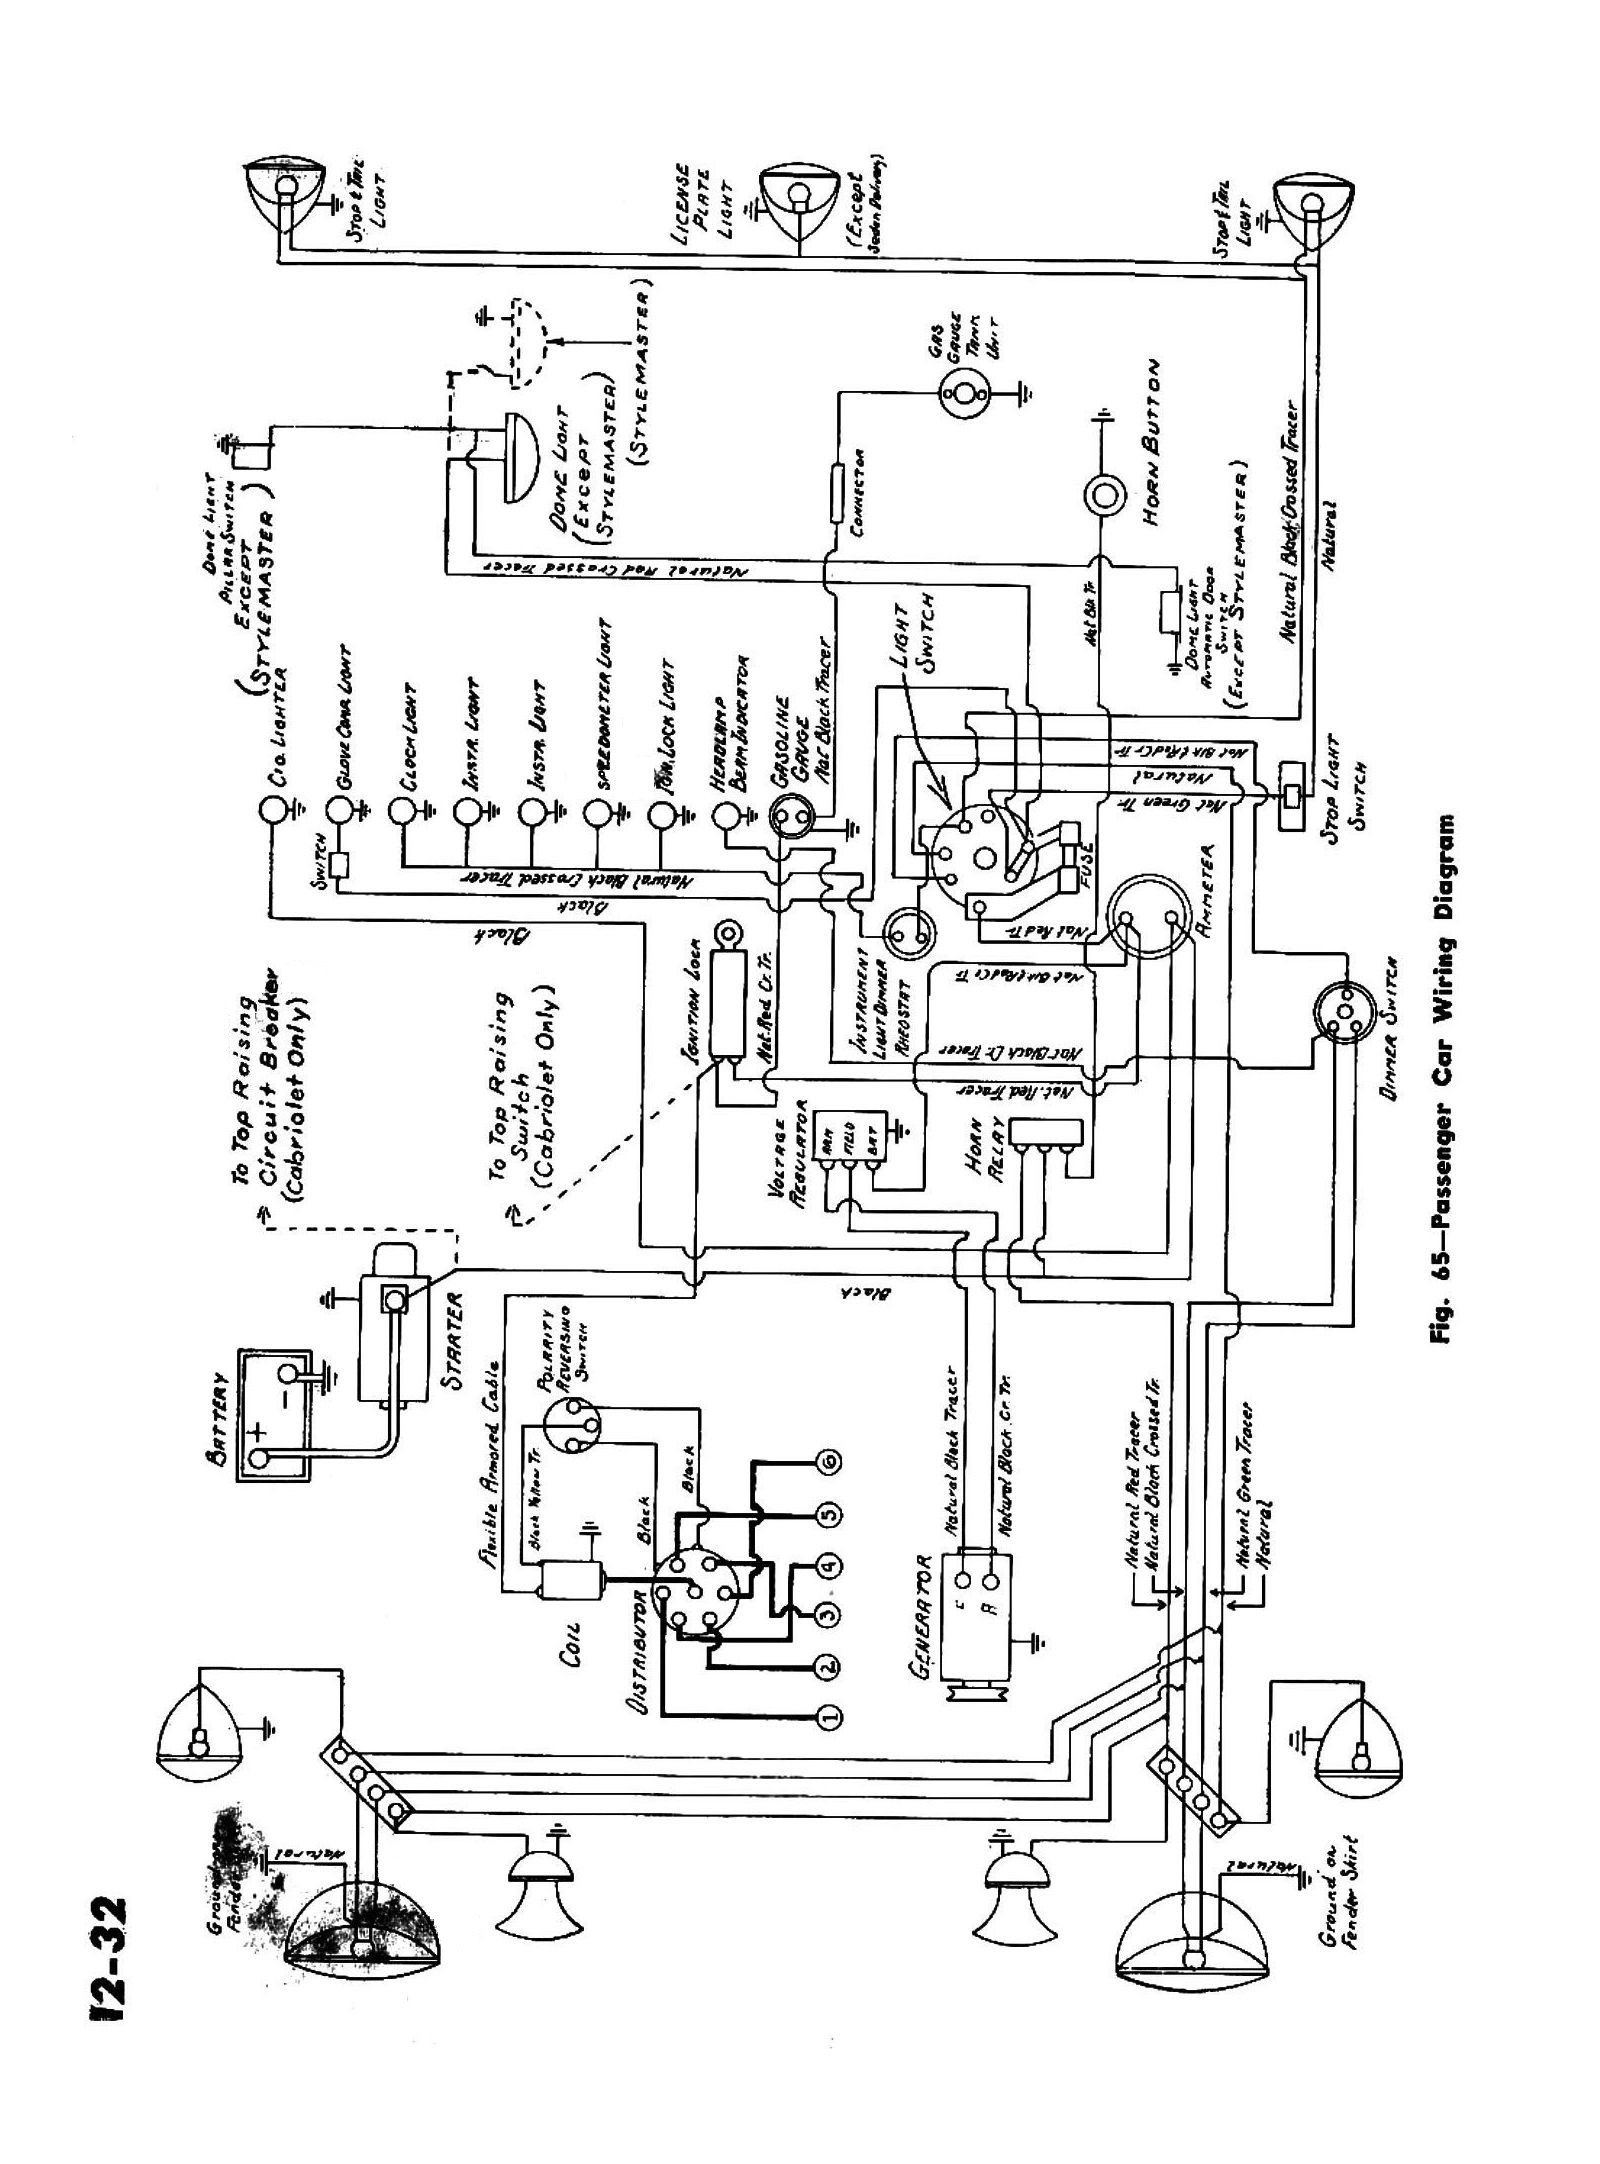 chevy wiring diagrams lincoln town car wiring diagram 1945 passenger car  wiring